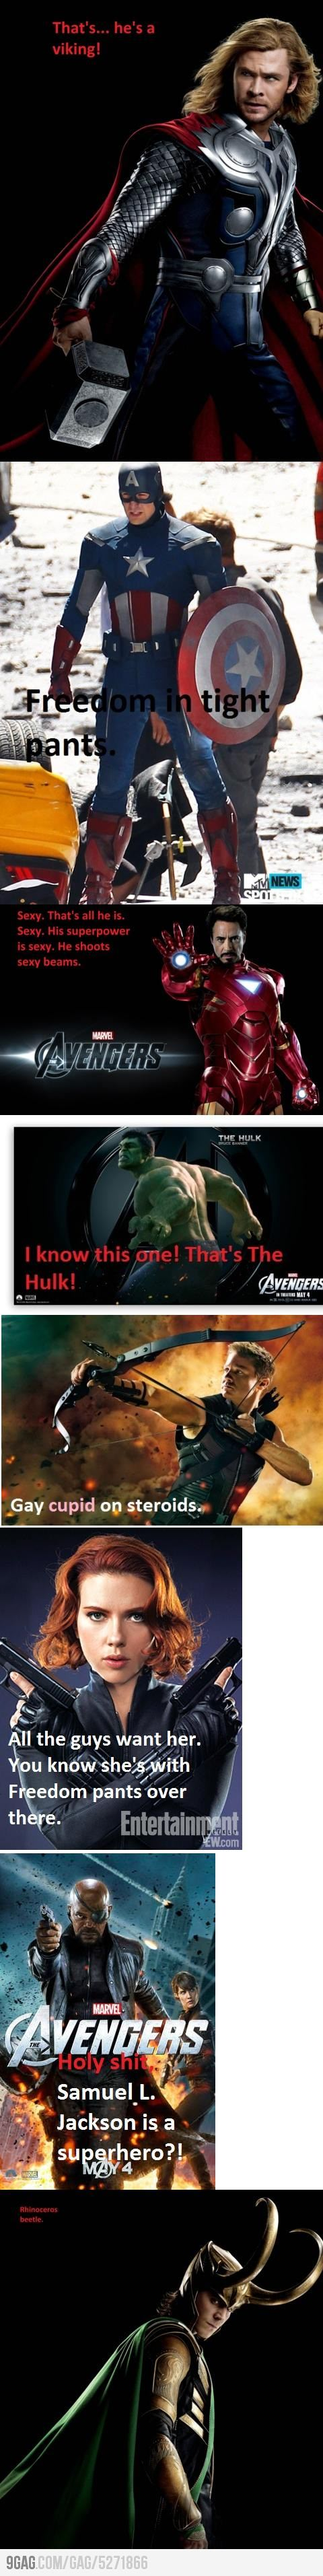 The only one I disagree with is Hawkeye...